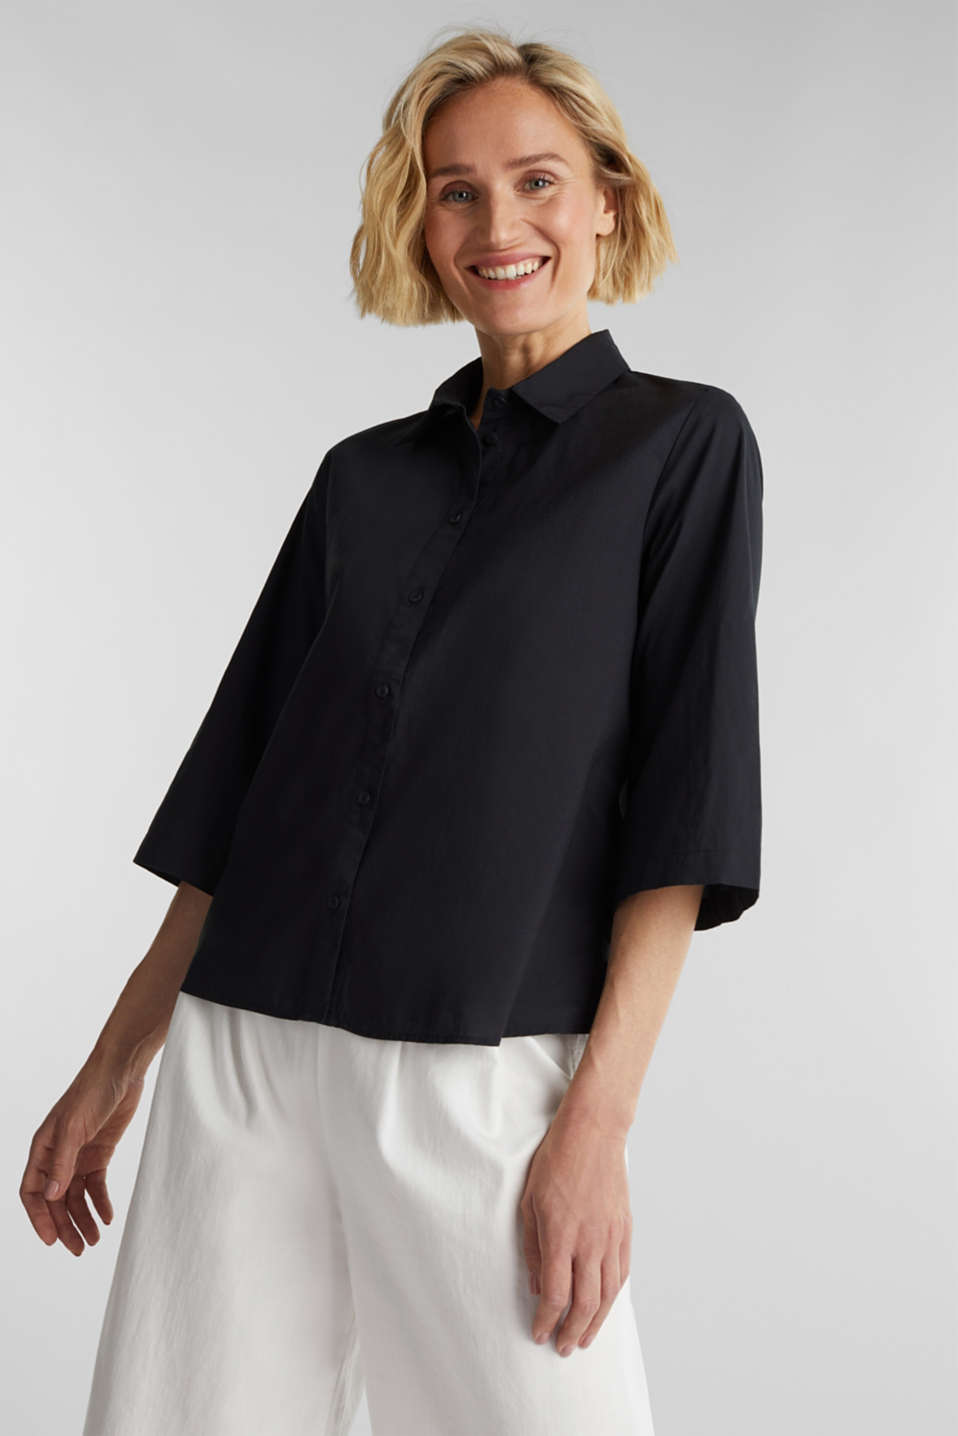 Esprit - Blouse with 3/4-length sleeves, cotton